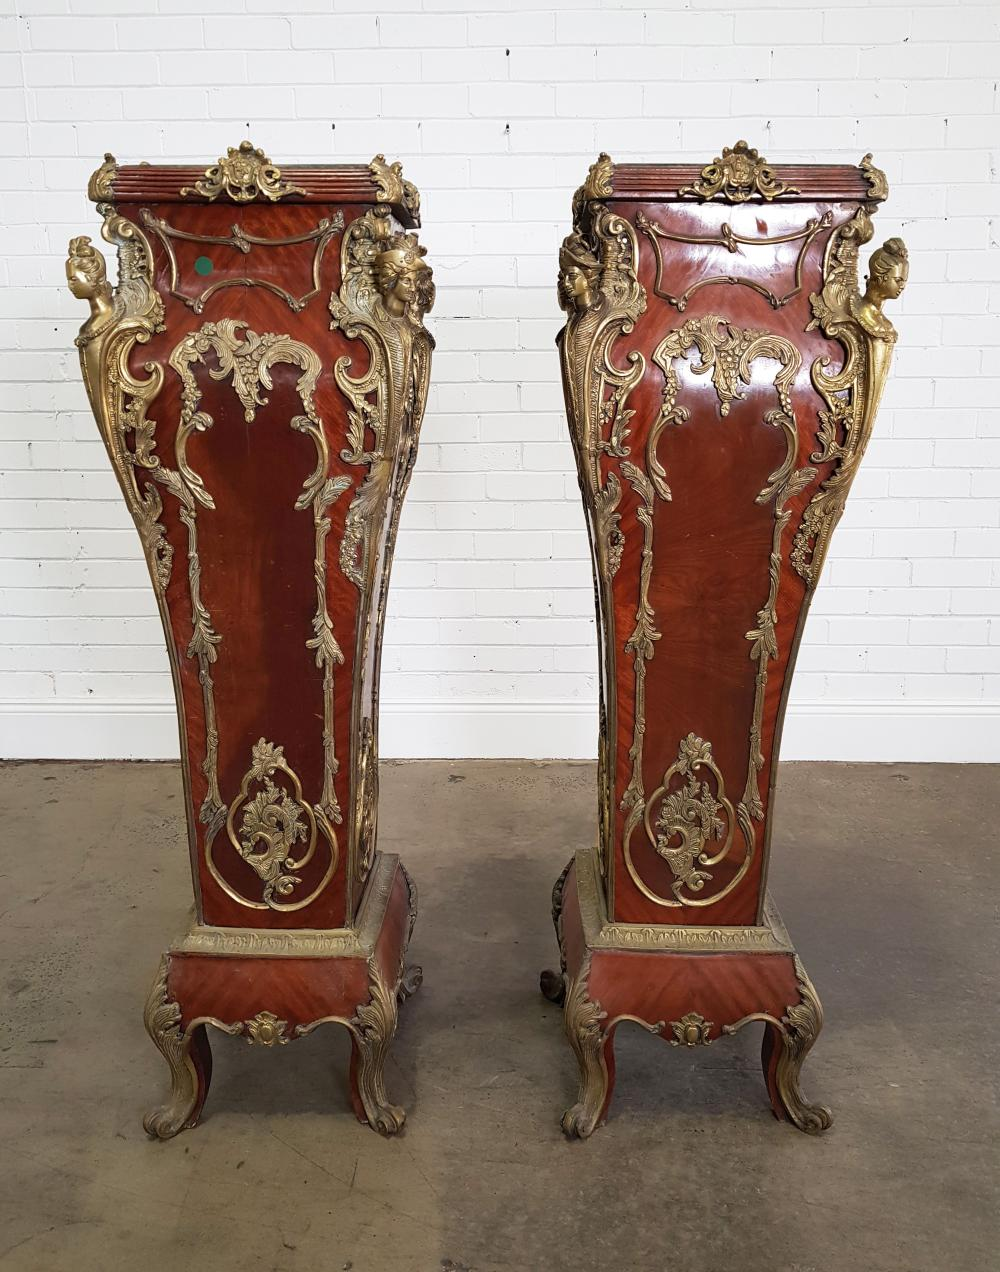 Good Pair of Tall French Style Veneered Pedestals, of bombe form with elaborate brass mounts including caryatids, green marble tops...